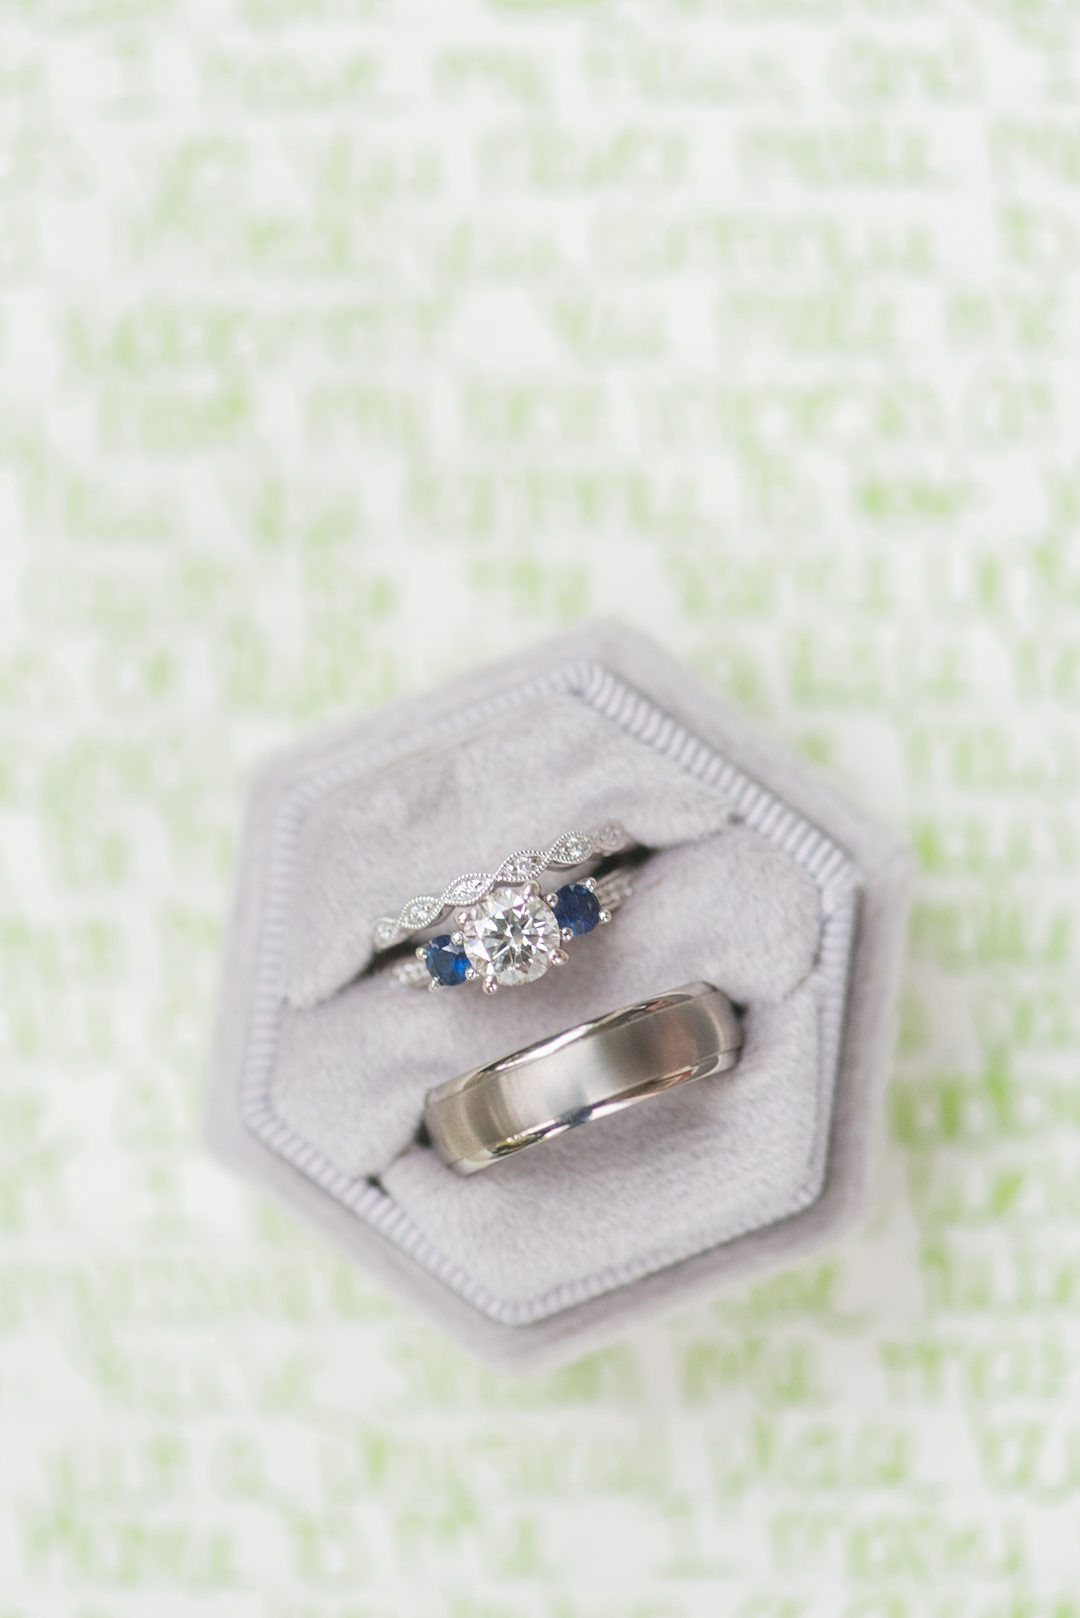 Rings in a grey velvet ring box captured by Mikkel Paige Photography. The detail photo was part of a small outdoor ceremony in Raleigh, NC.